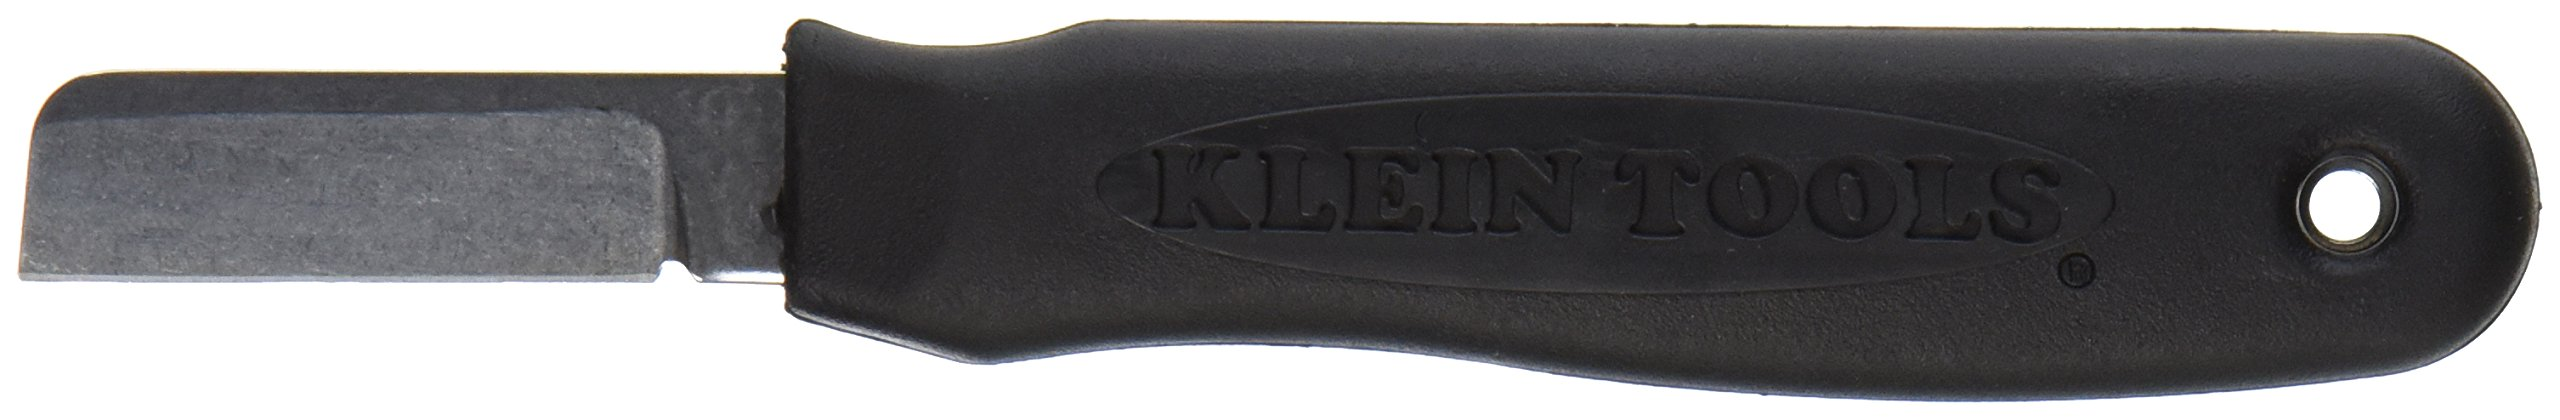 Cable Splicer's Knife, 6-1/2-Inch Klein Tools 44200 by Klein Tools